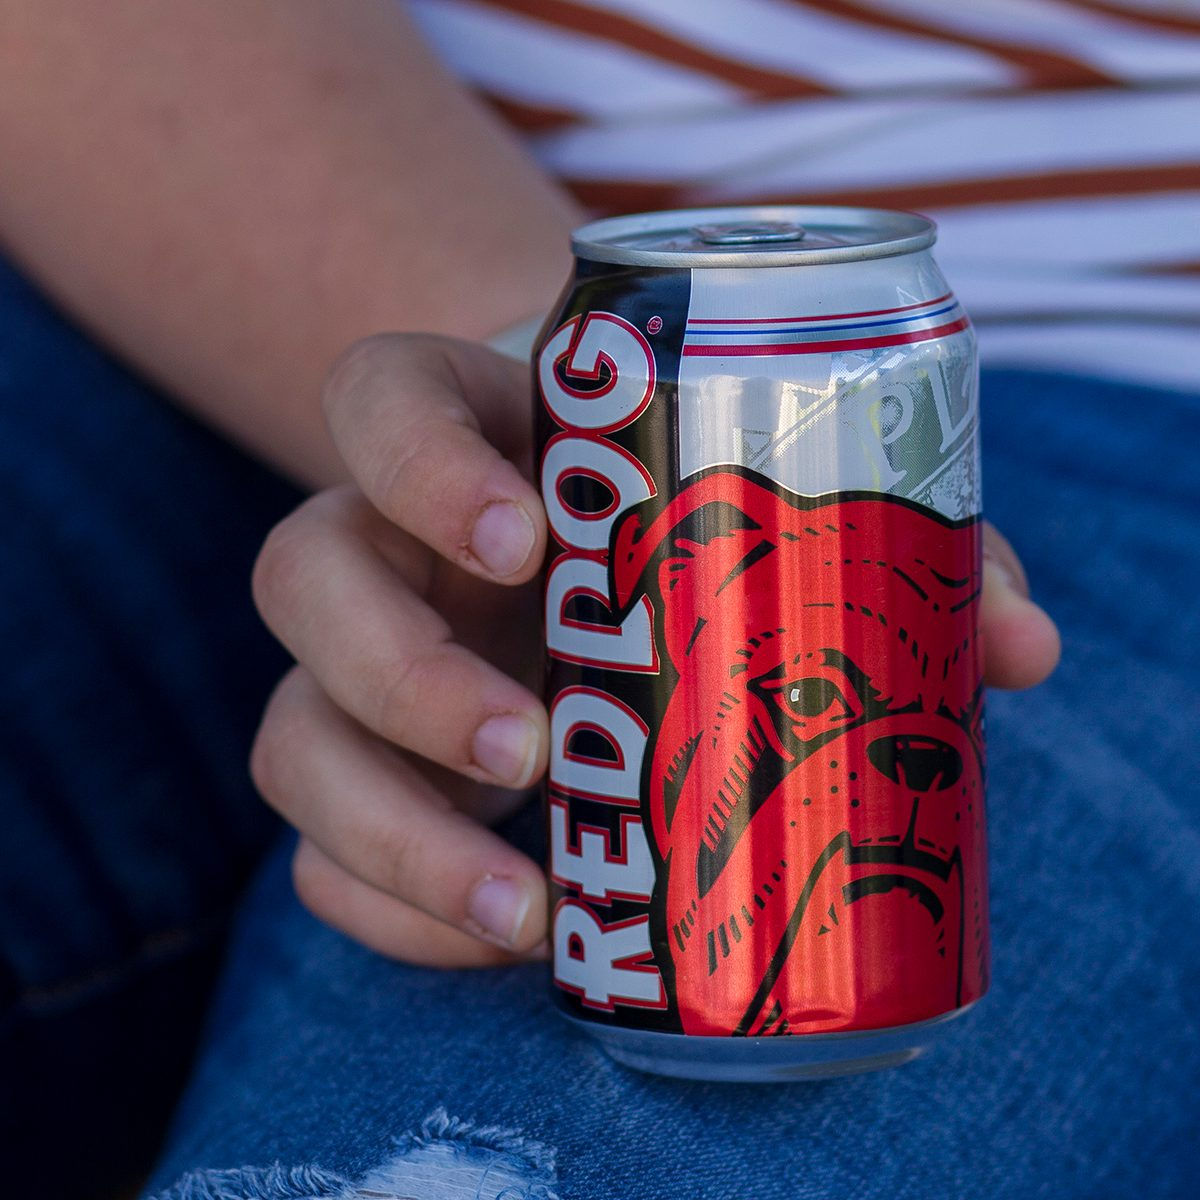 Can of Red Dog beer